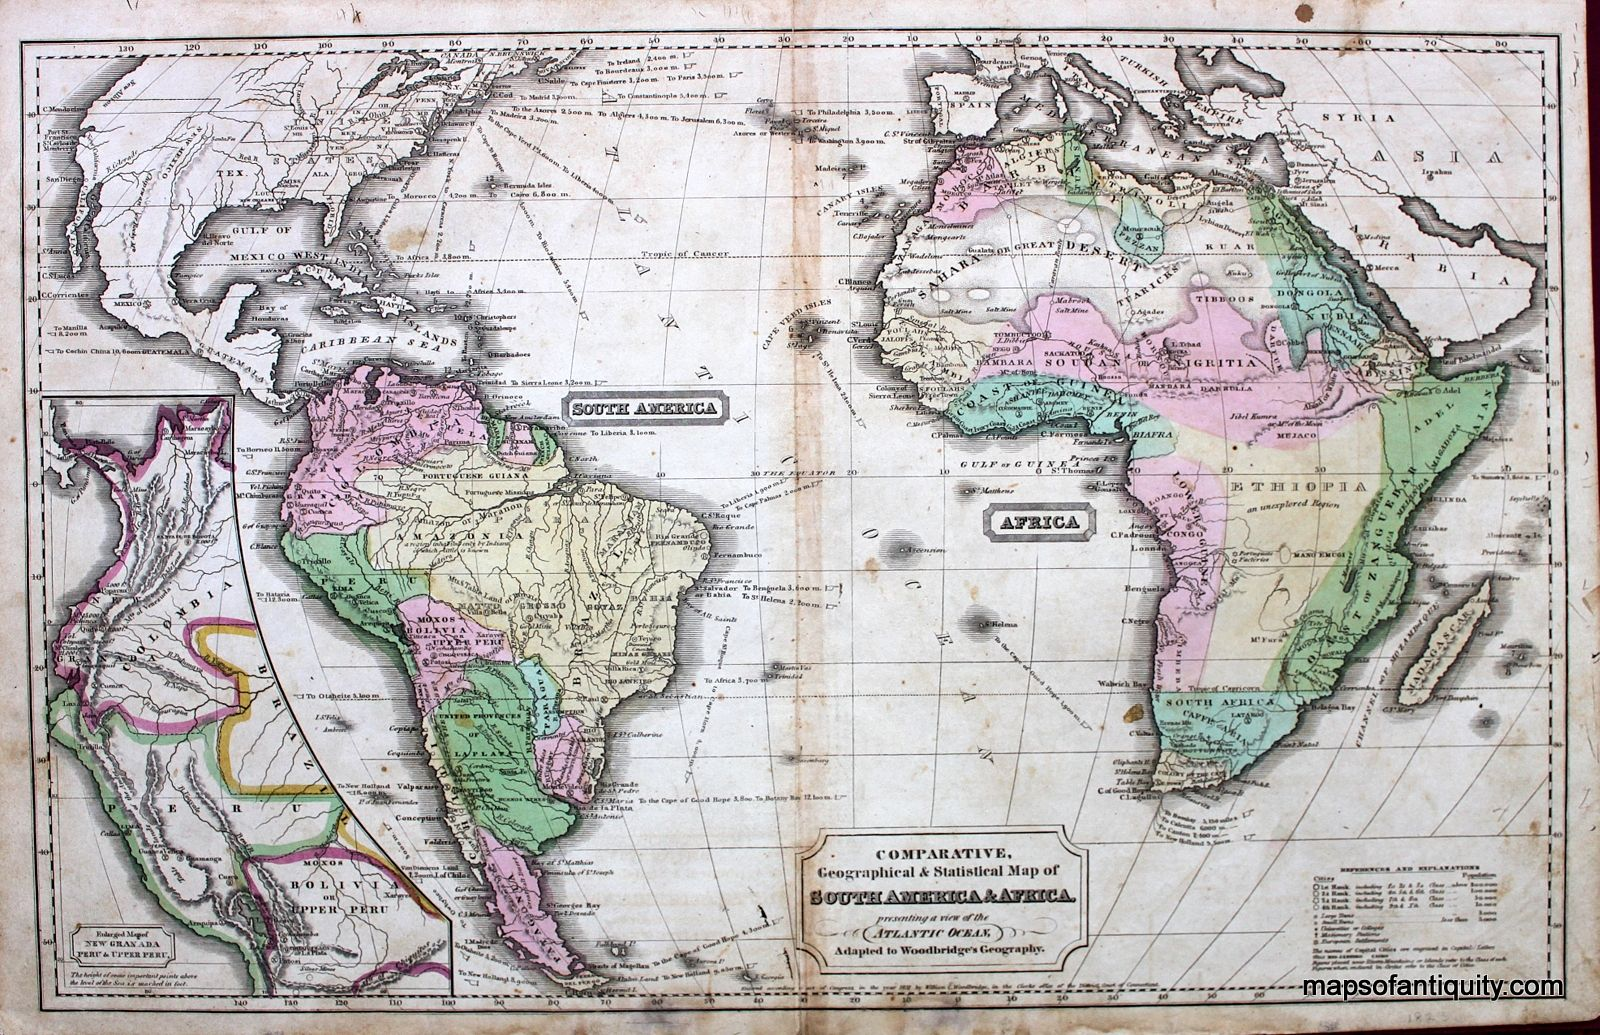 South America Map Borders%0A Comparative Geographical and Statistical Map of South America and Africa   presenting a view of the Atlantic Ocean       SOLD       Antique Maps and  Charts